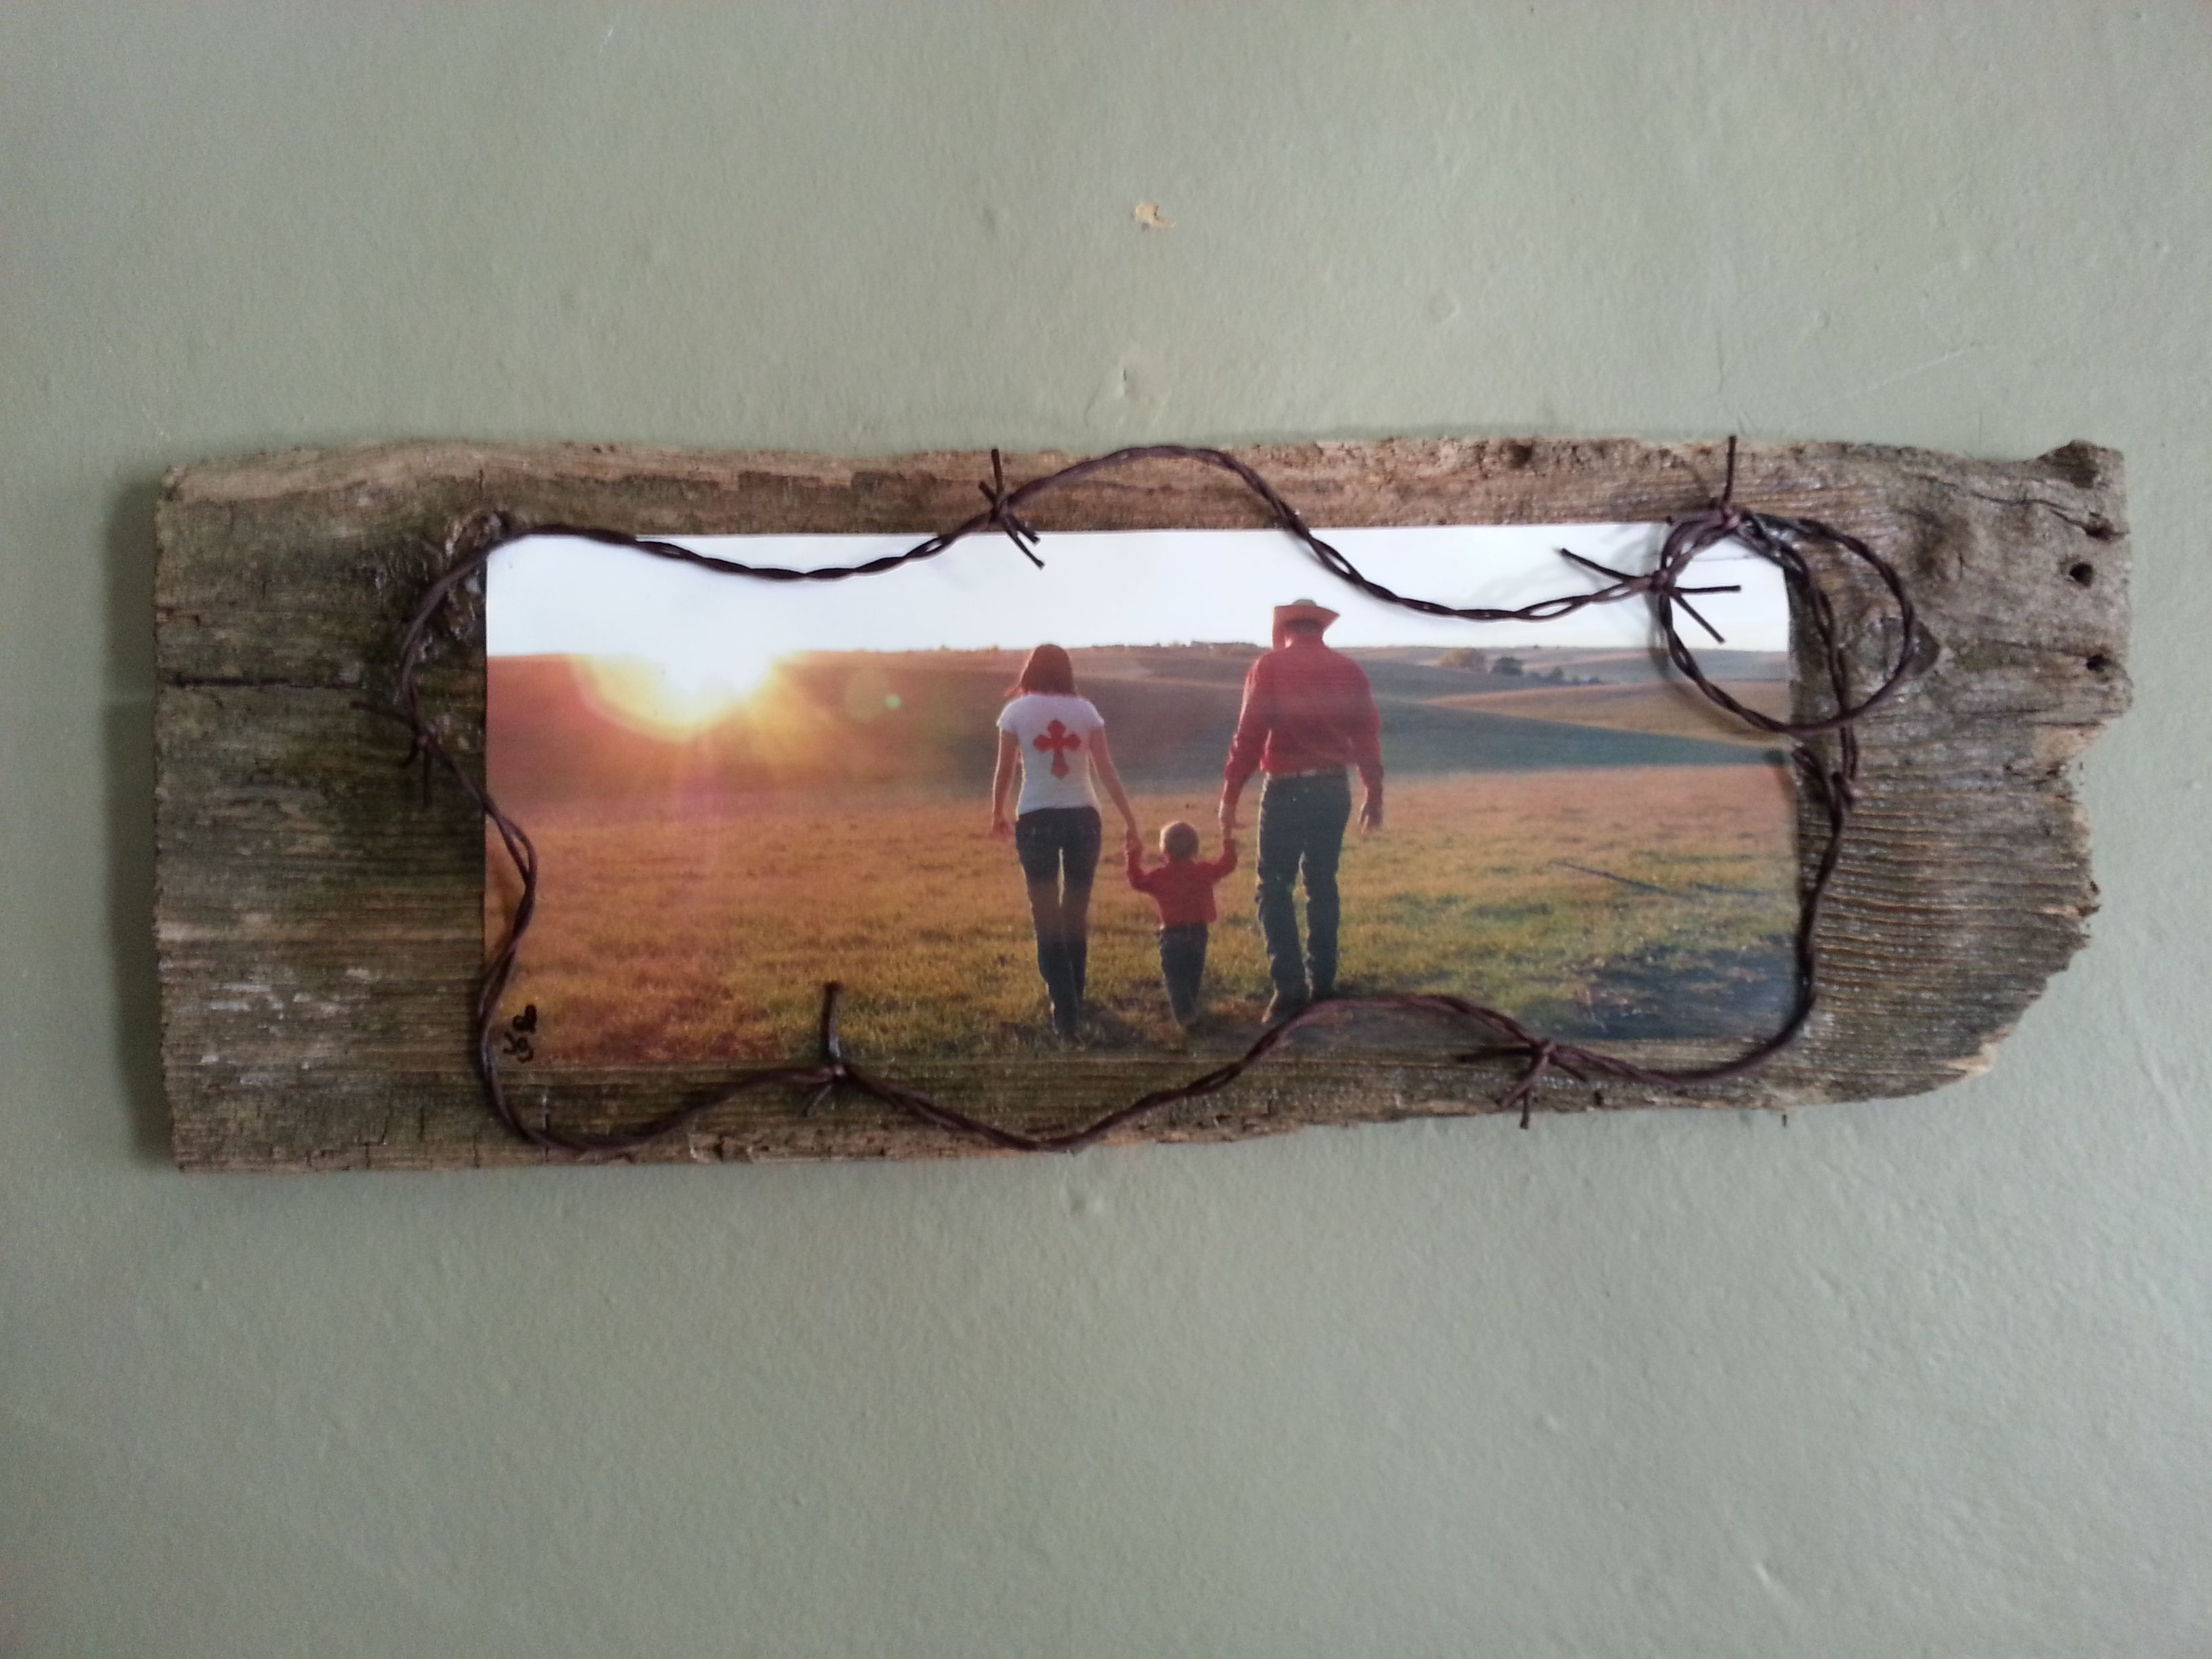 barnwood crafts ideas | Mod Podge photo on old barn wood | craft ideas finally know what I'm doing with the piece if barn wood I've carried around for years!!!!